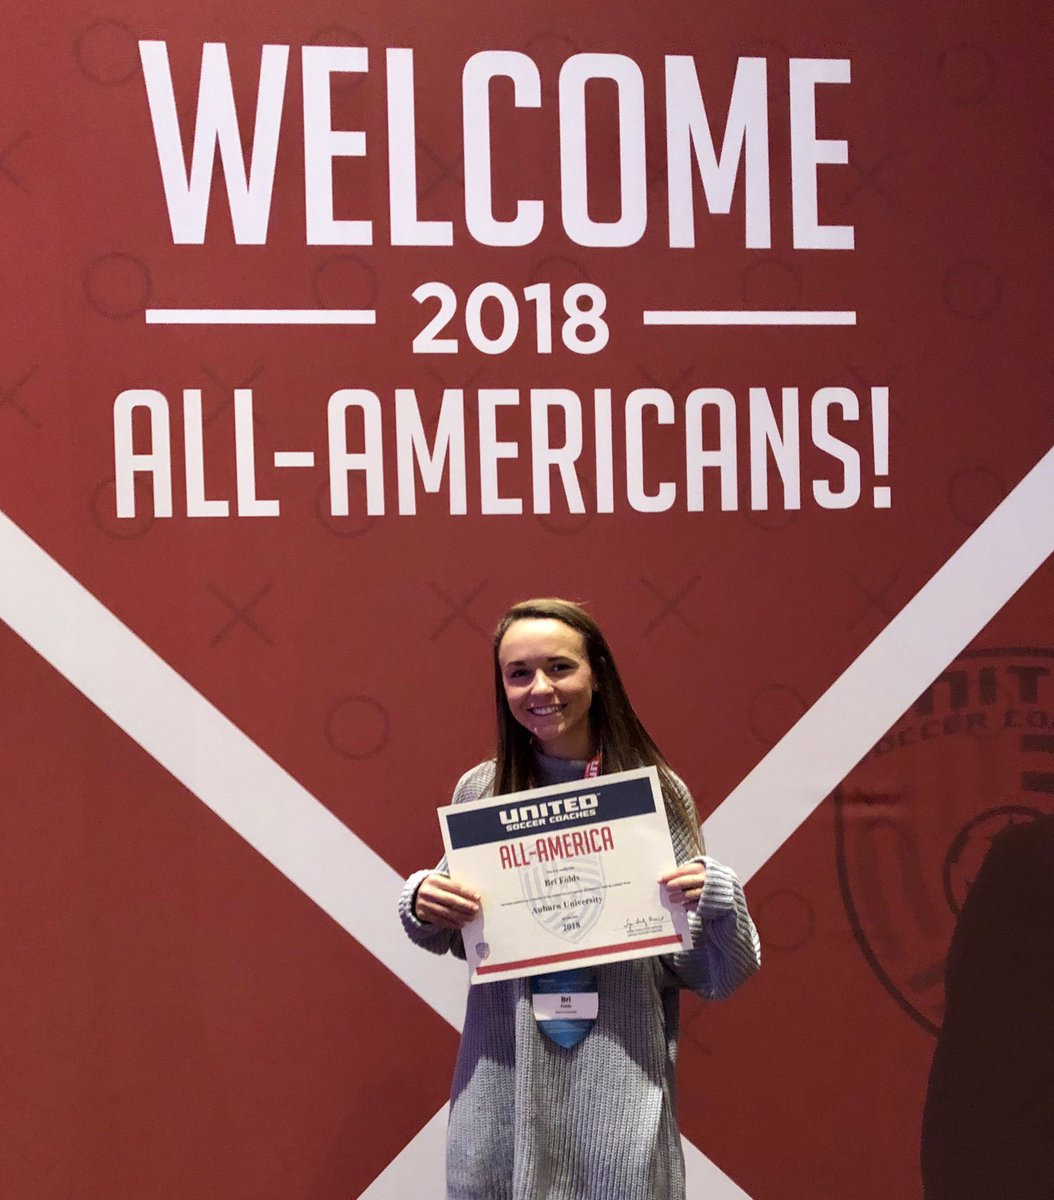 Congrats to @brifolds4, who was honored as a 2018 United Soccer Coaches All-American at the awards banquet in Chicago last weekend!    #WarEagle<br>http://pic.twitter.com/oHtQydhS4n